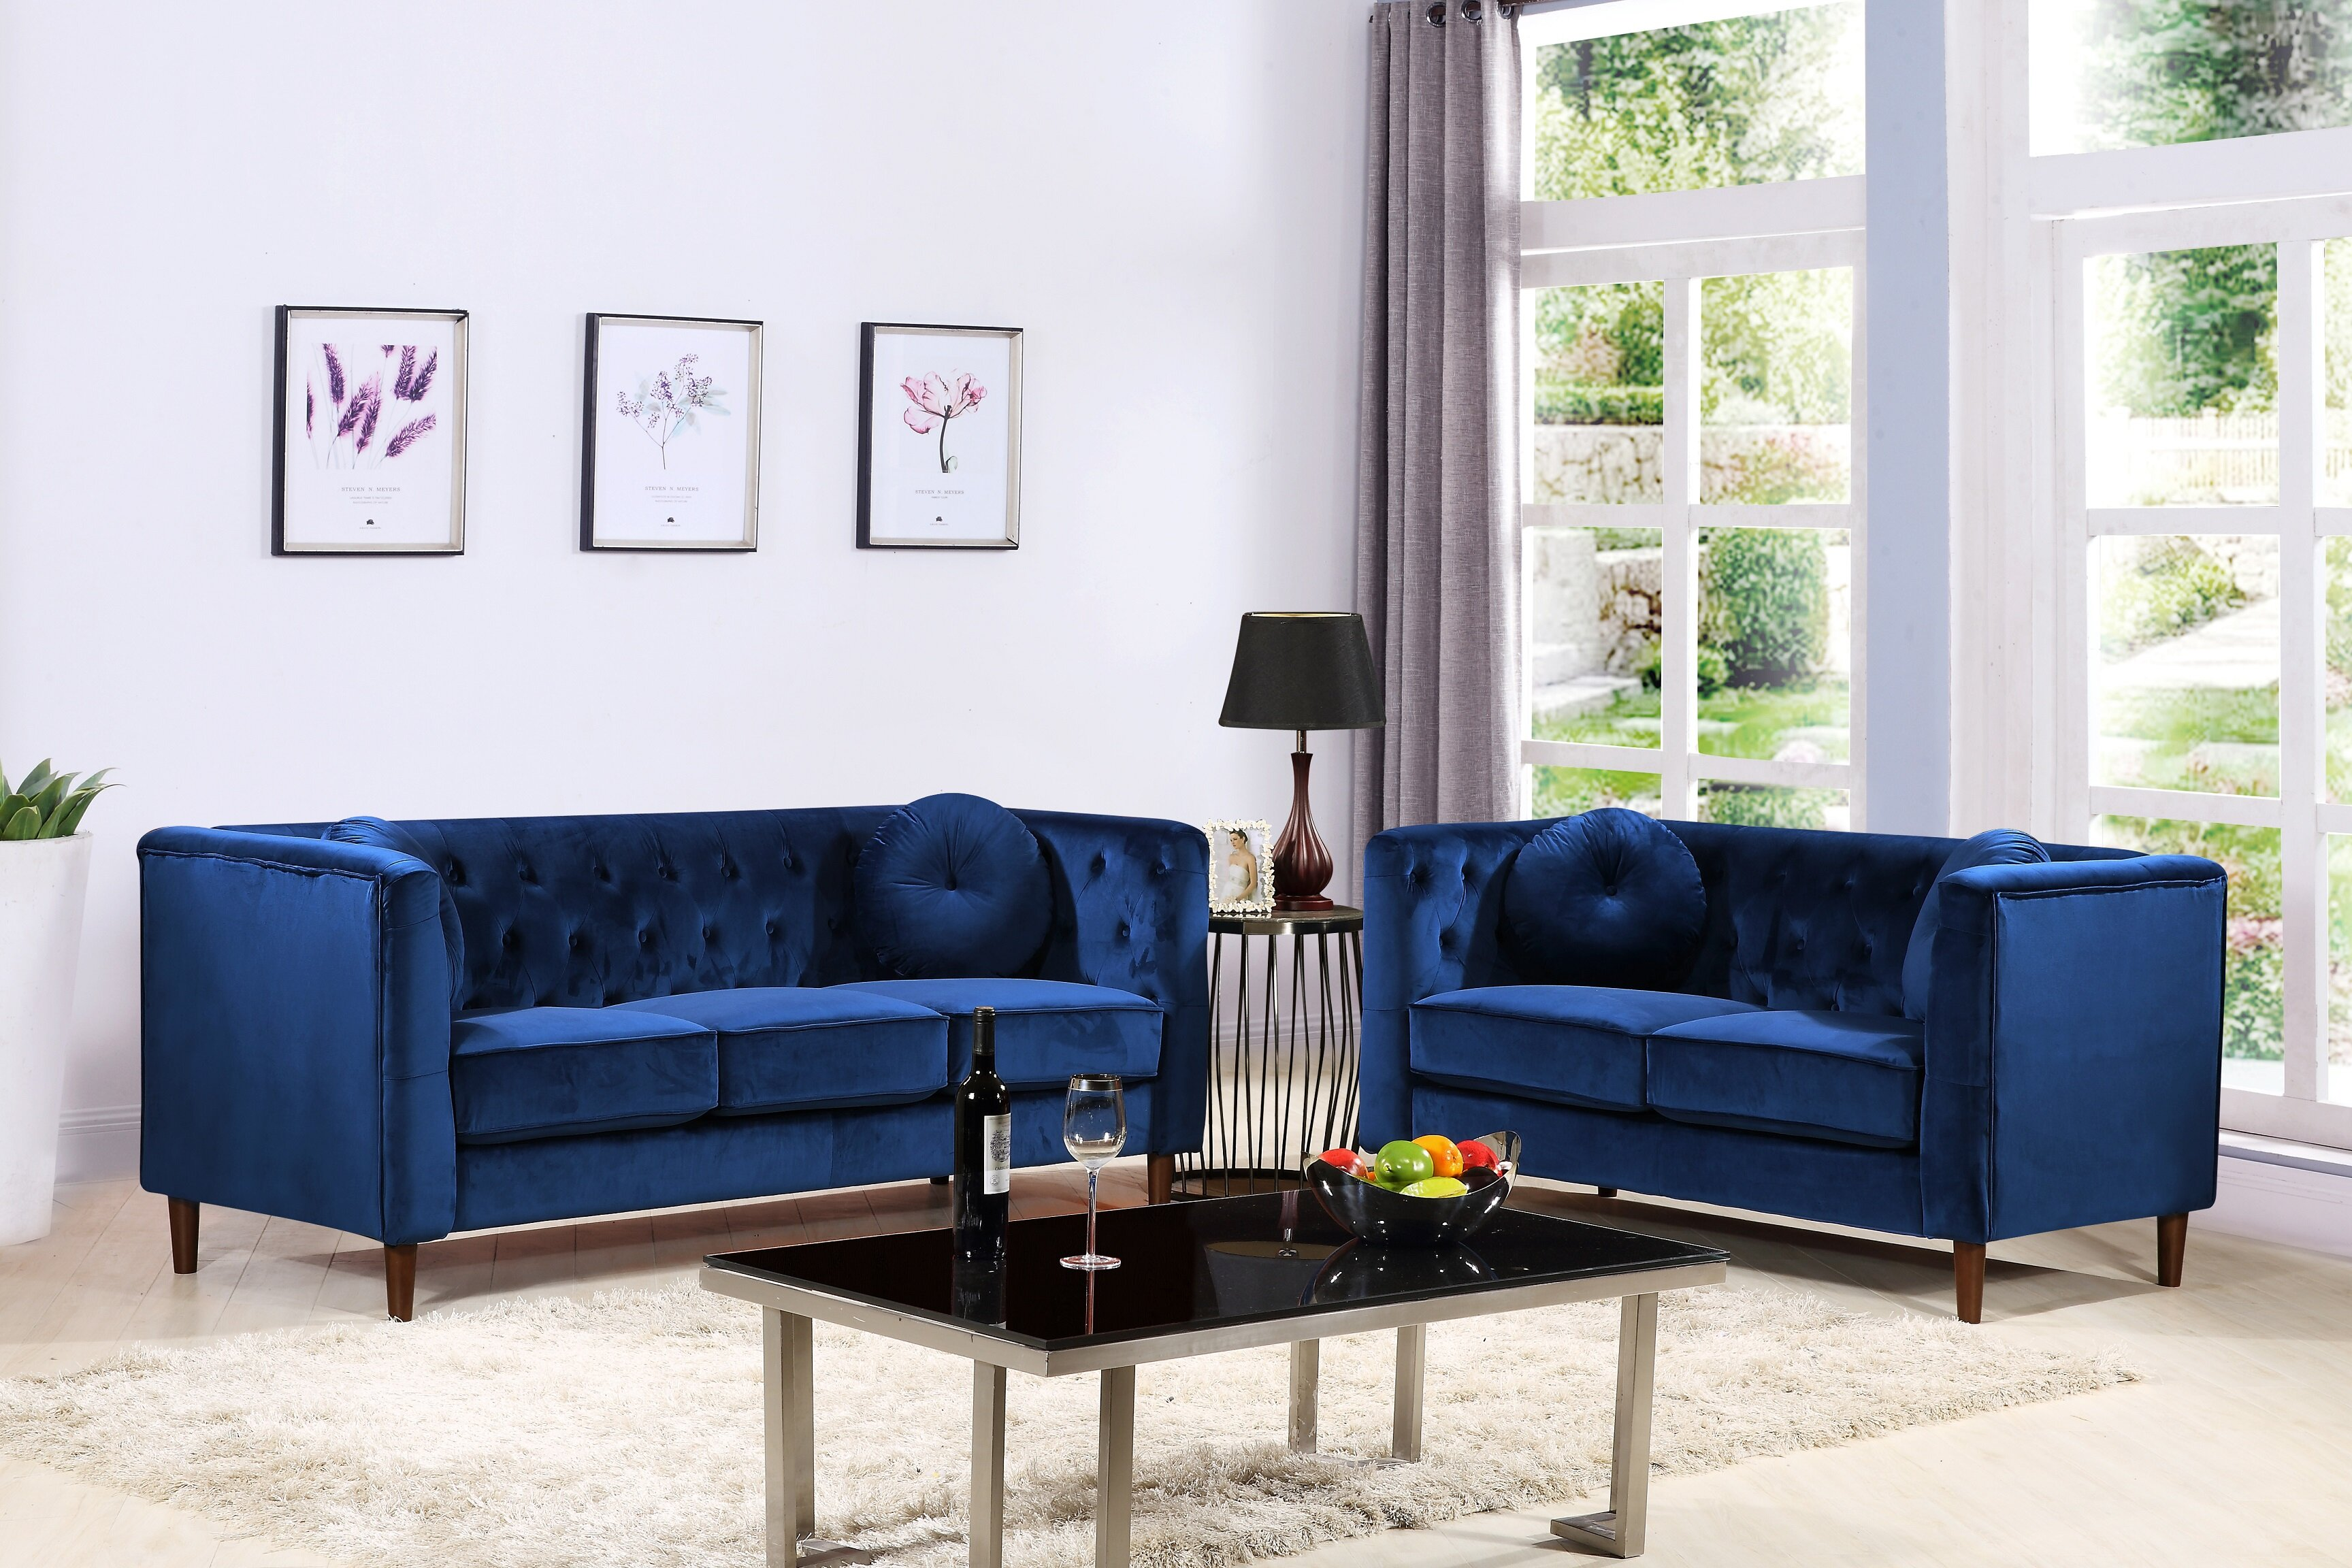 Kitts Classic Chesterfield 2 Piece Living Room Set